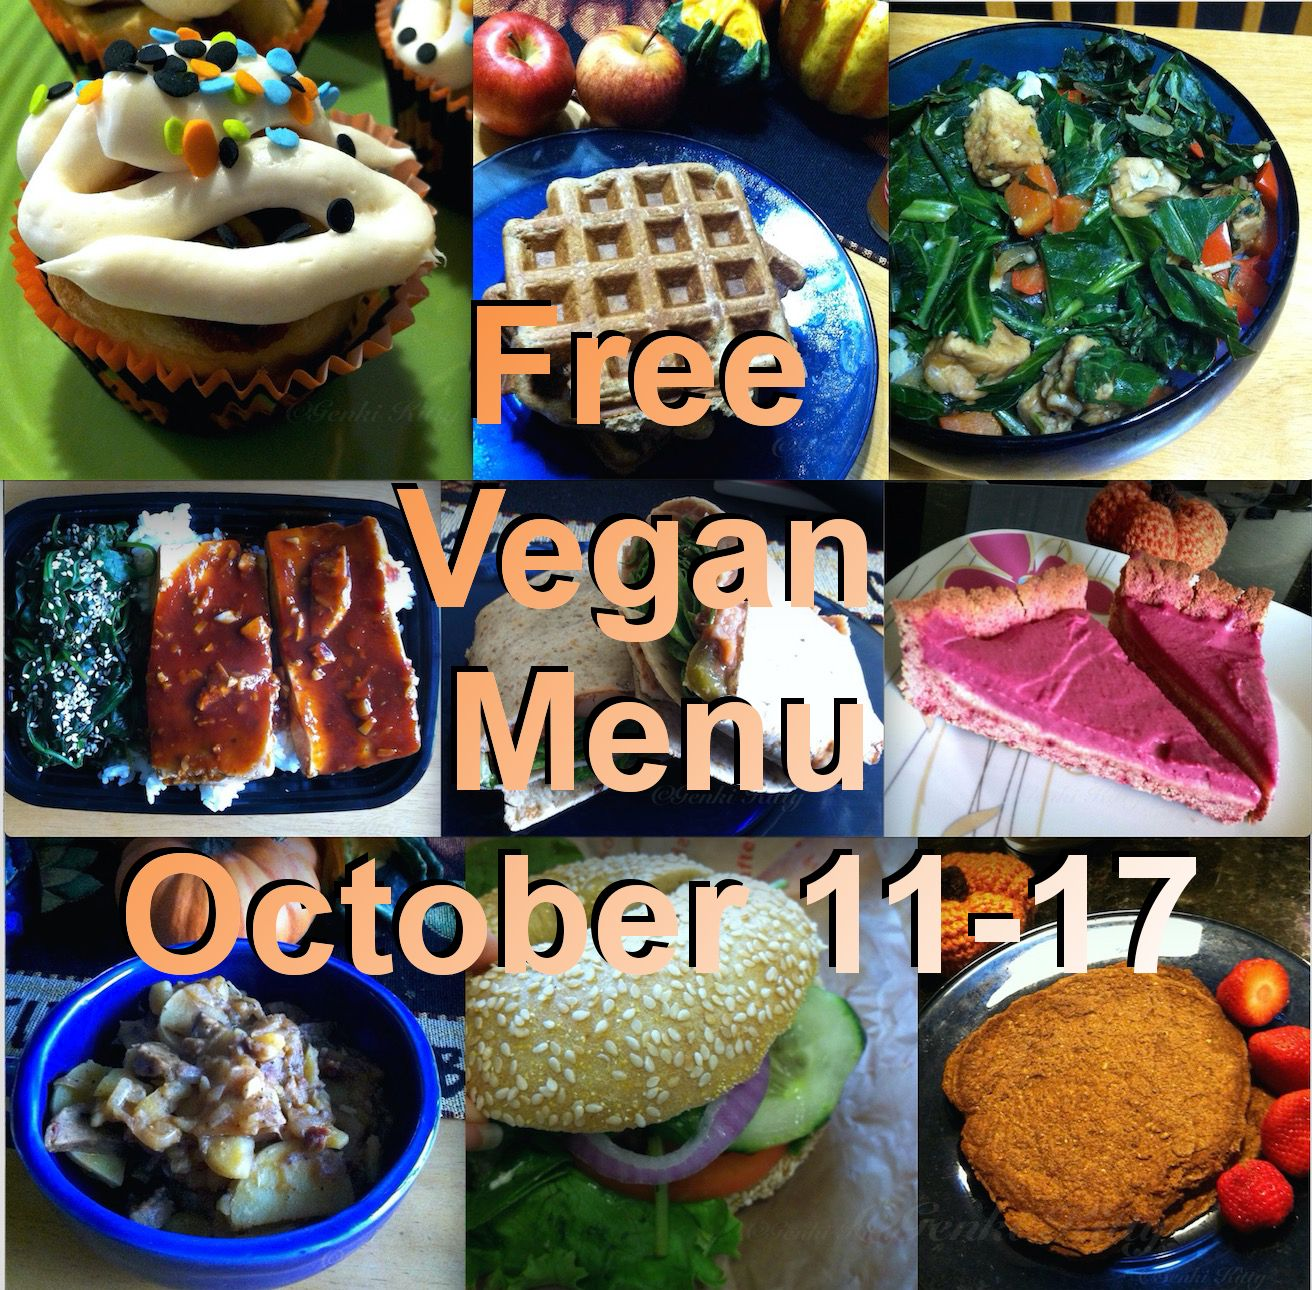 Free Vegan Menu: October 11-17.  See what is on the menu along with the recipes that go along with each item.  #vegan #free #menu